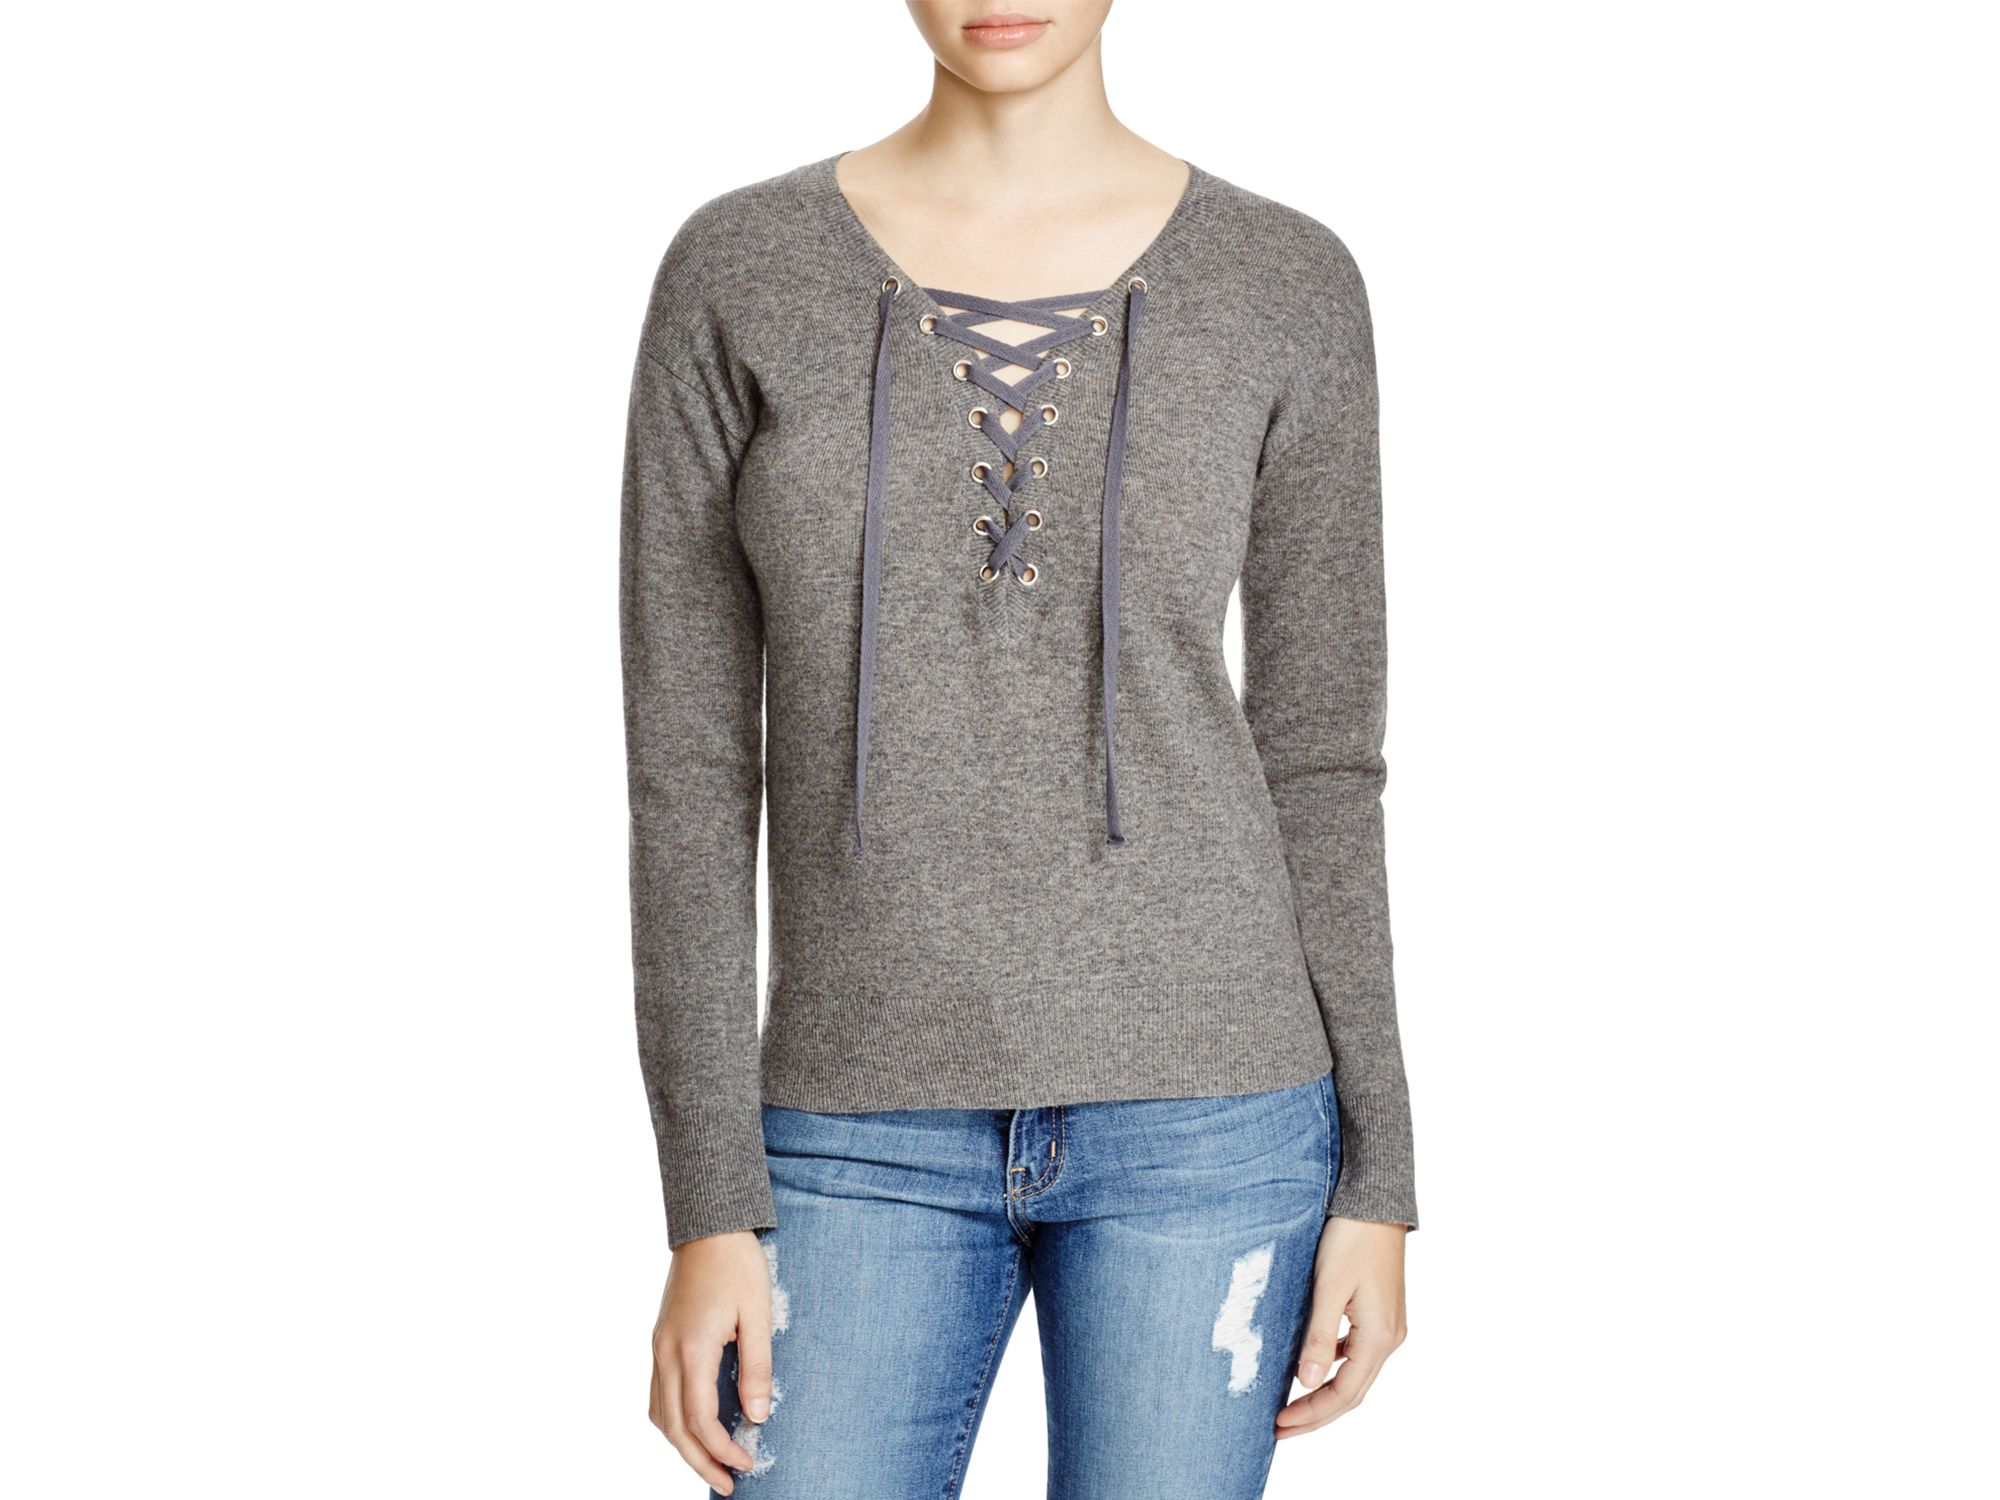 Aqua Lace-up Sweater in Gray | Lyst